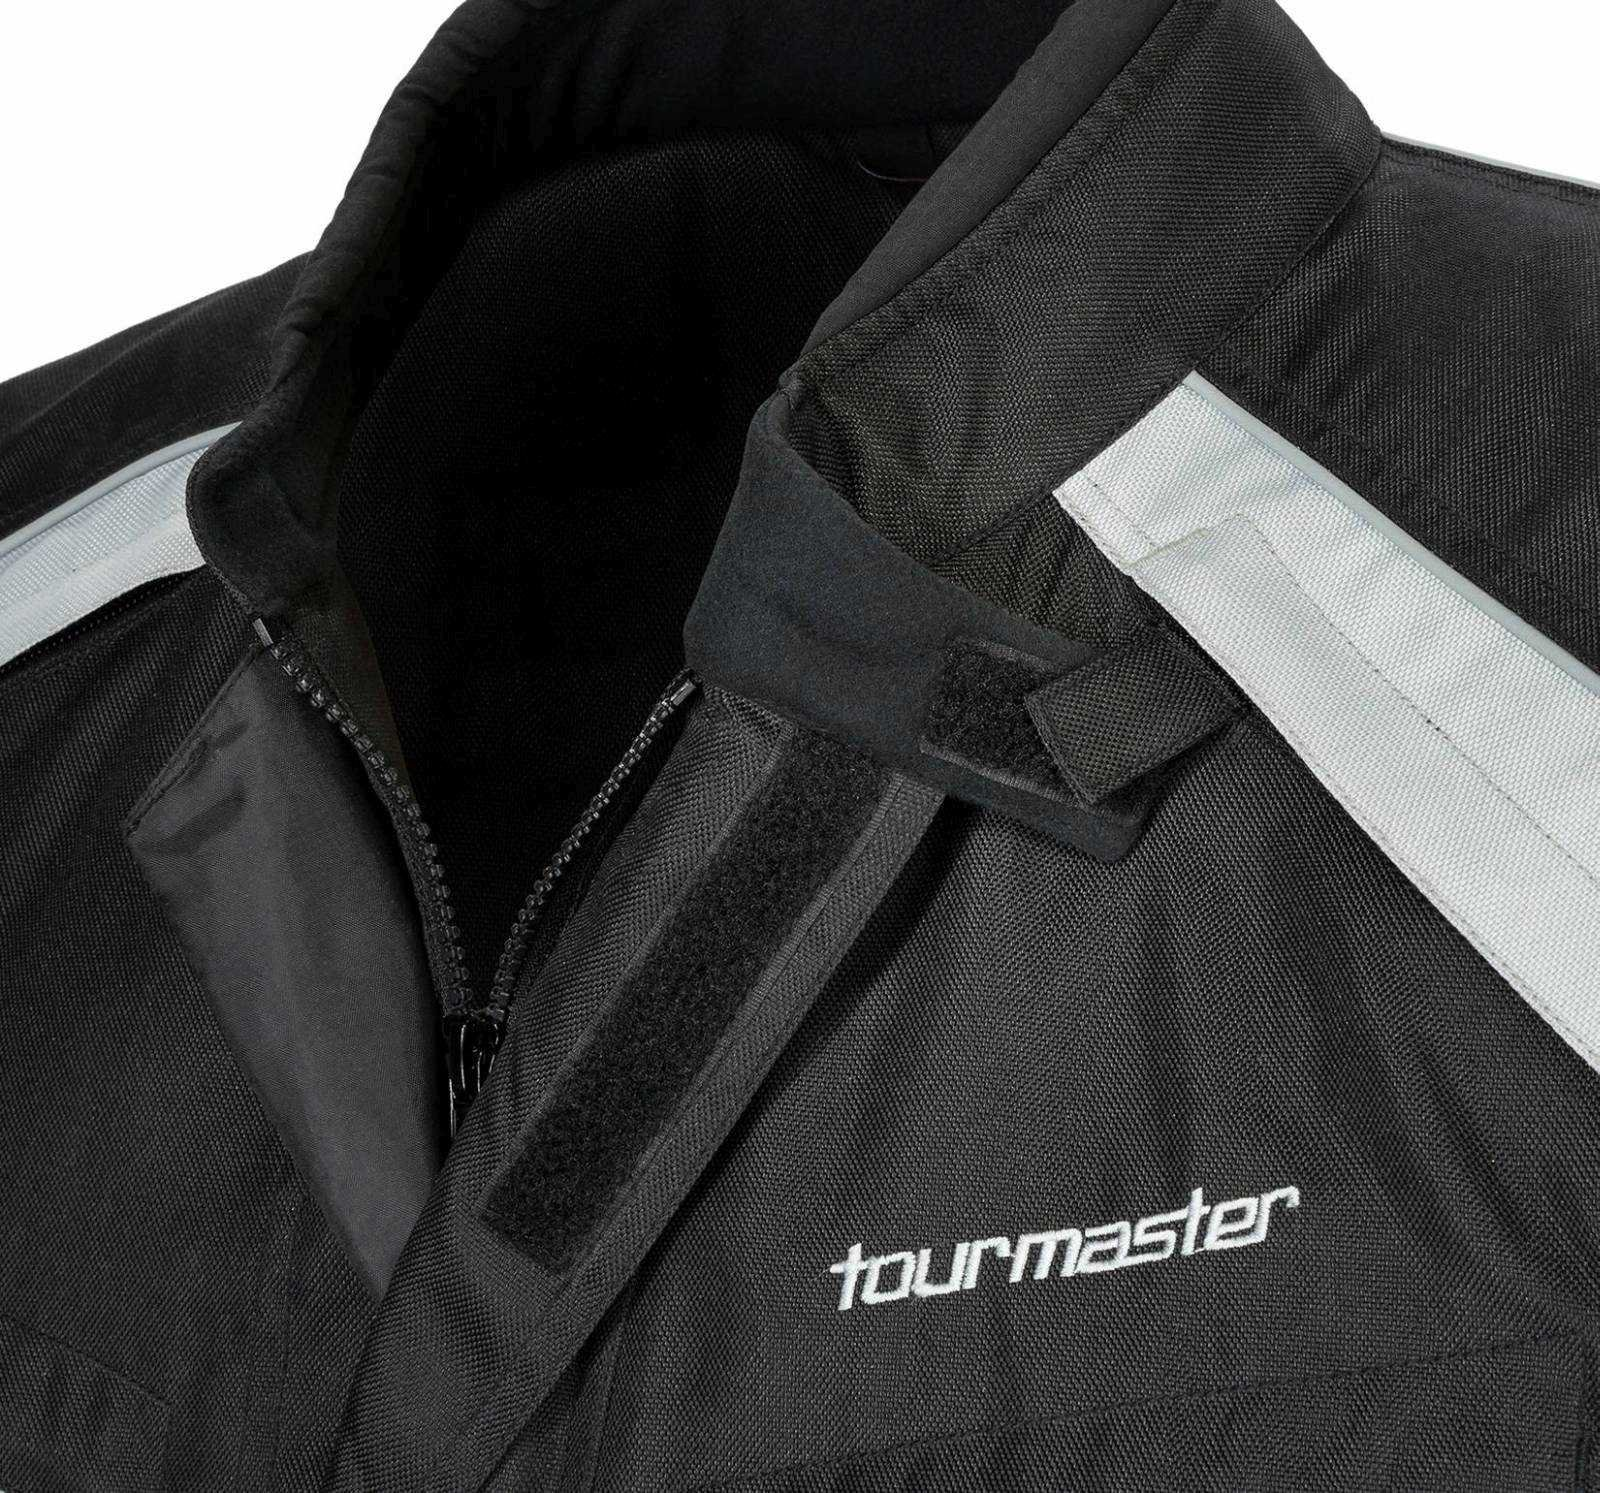 TourMaster Saber 4.0 Men's 3/4 Outer Shell Textile Motorcycle Jacket (Silver/Black, XX-Large) by Tourmaster (Image #2)